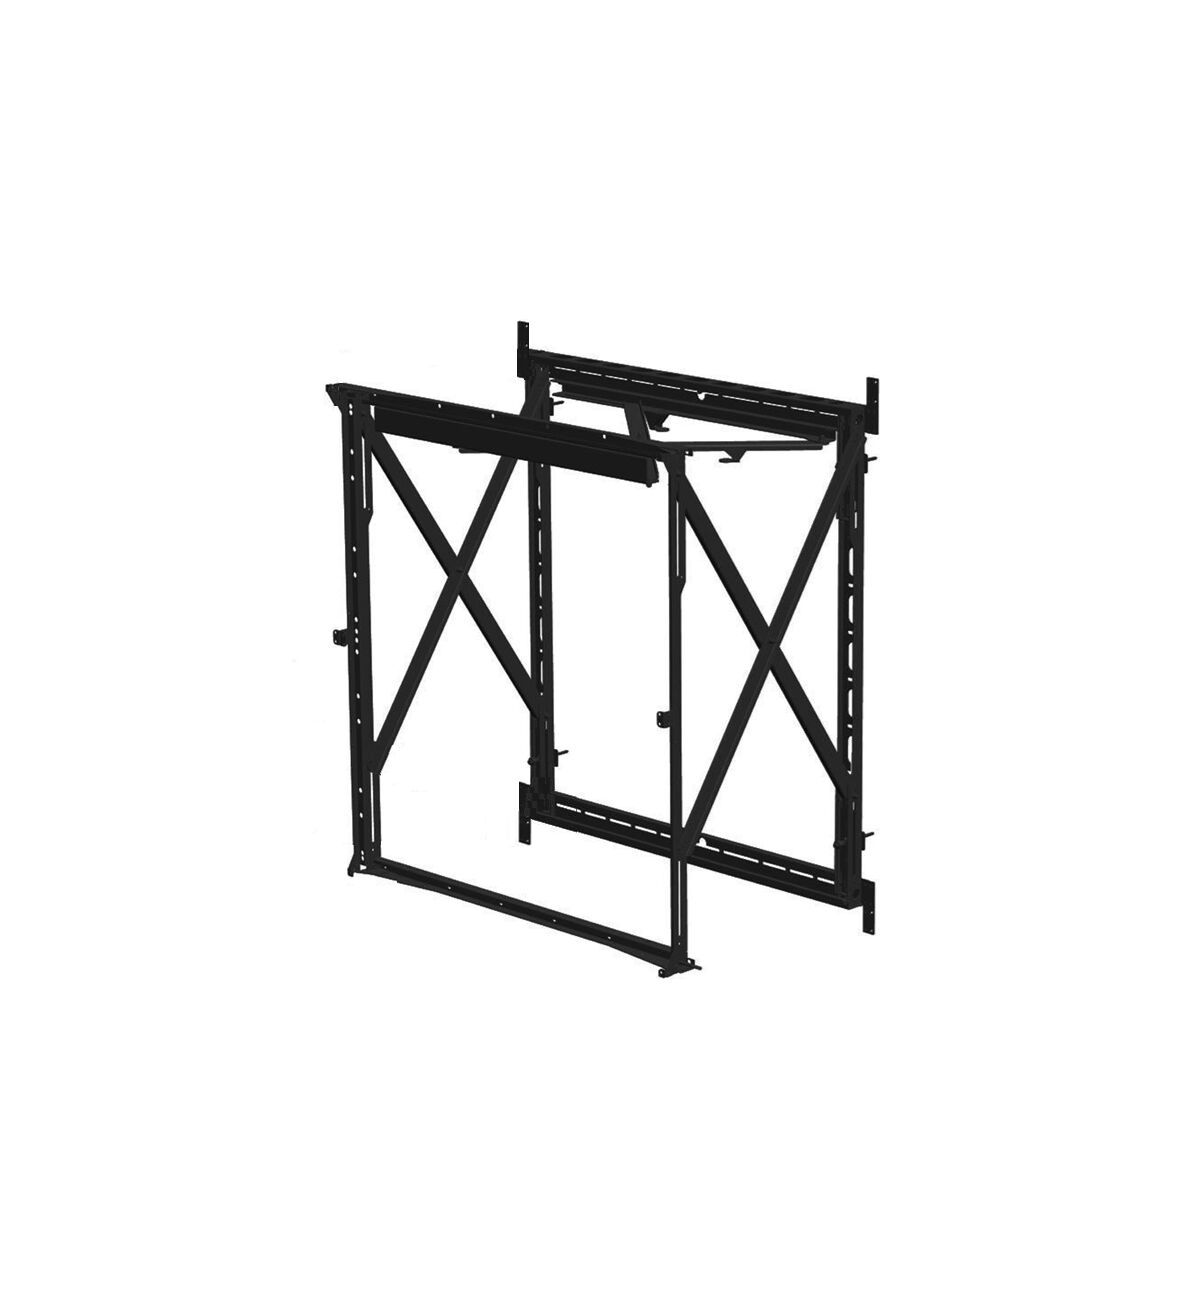 Vogel's PLW 1001 1x2 LED video wall mount - Product